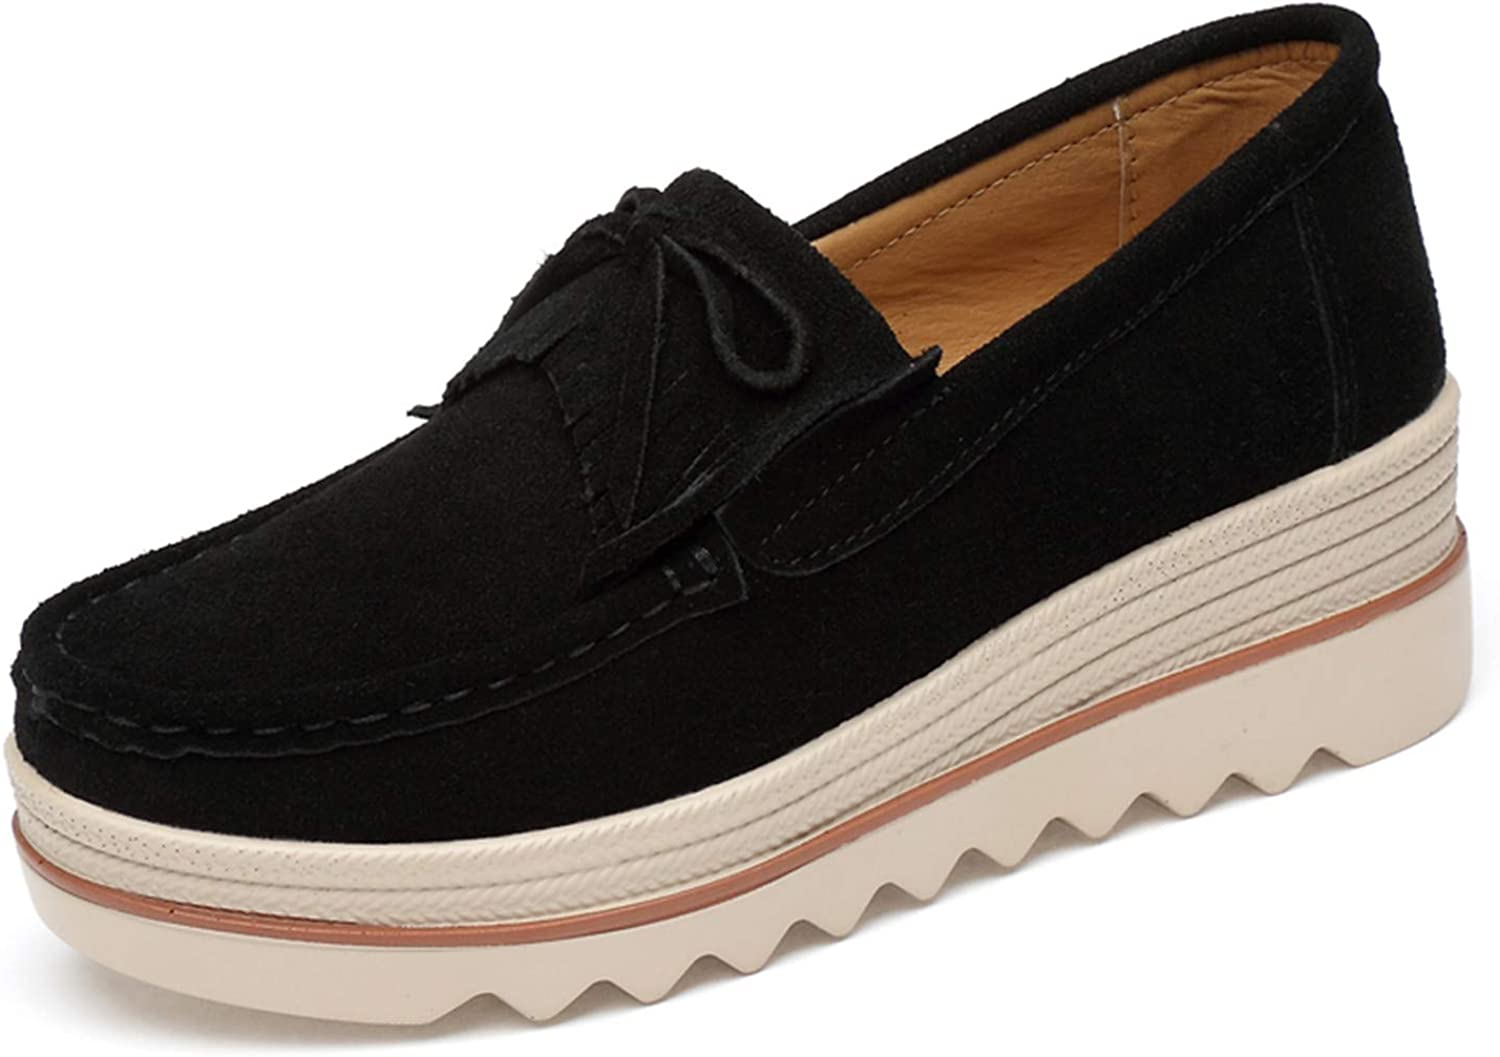 YLX0518 Womens Platform Flats Walking shoes Ladies Fashion Casual Boat Loafers